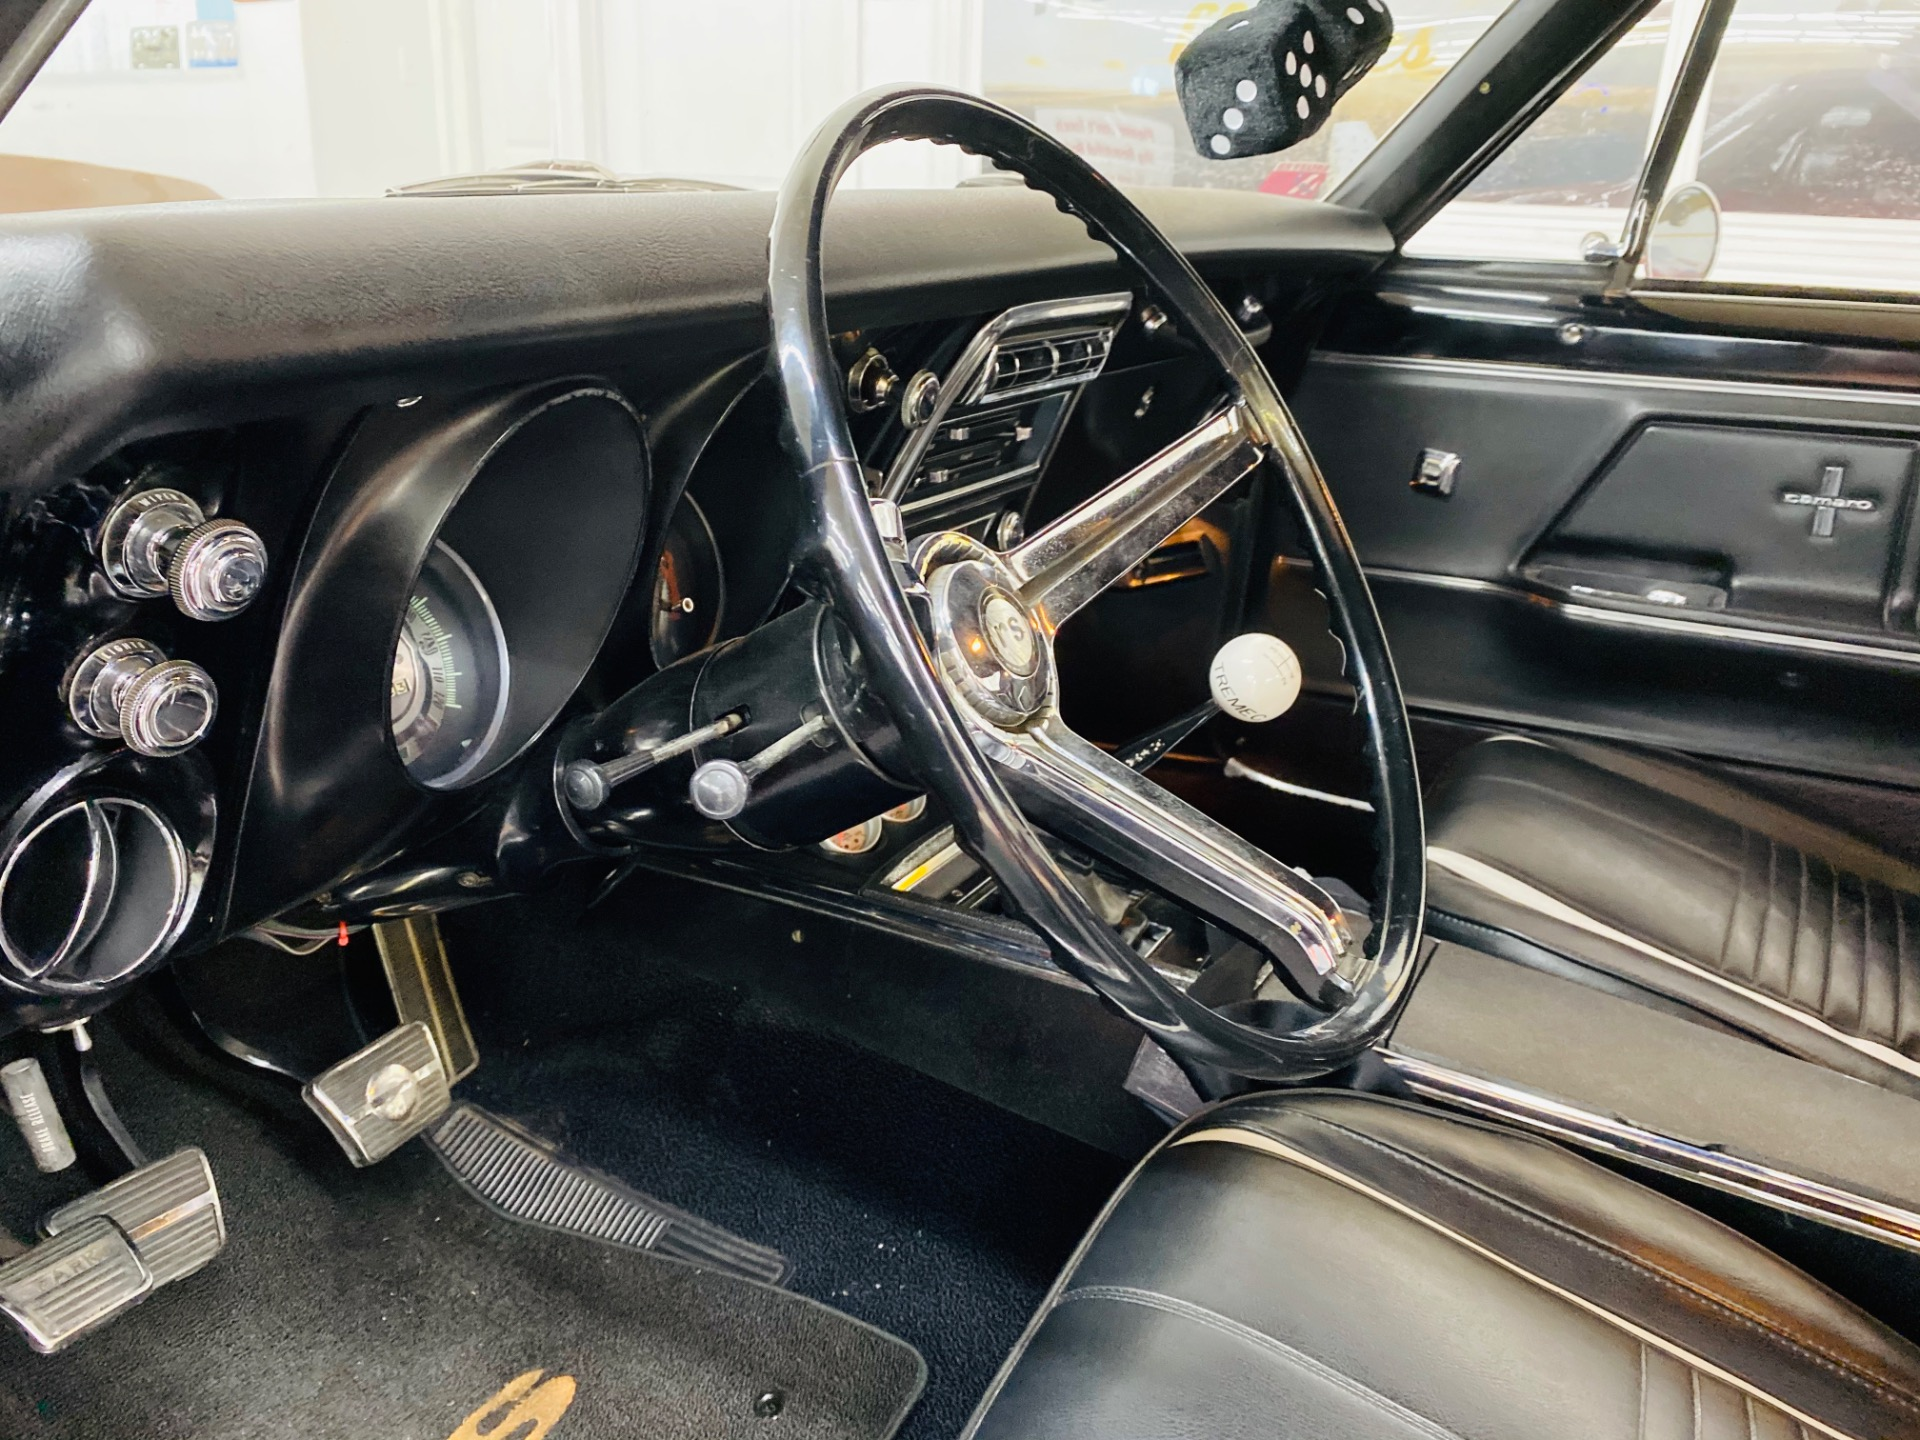 Used 1967 Chevrolet Camaro - RS - 383 STROKER - PRO BUILT - VINTAGE AIR - 5 SPEED - SEE VIDEO | Mundelein, IL